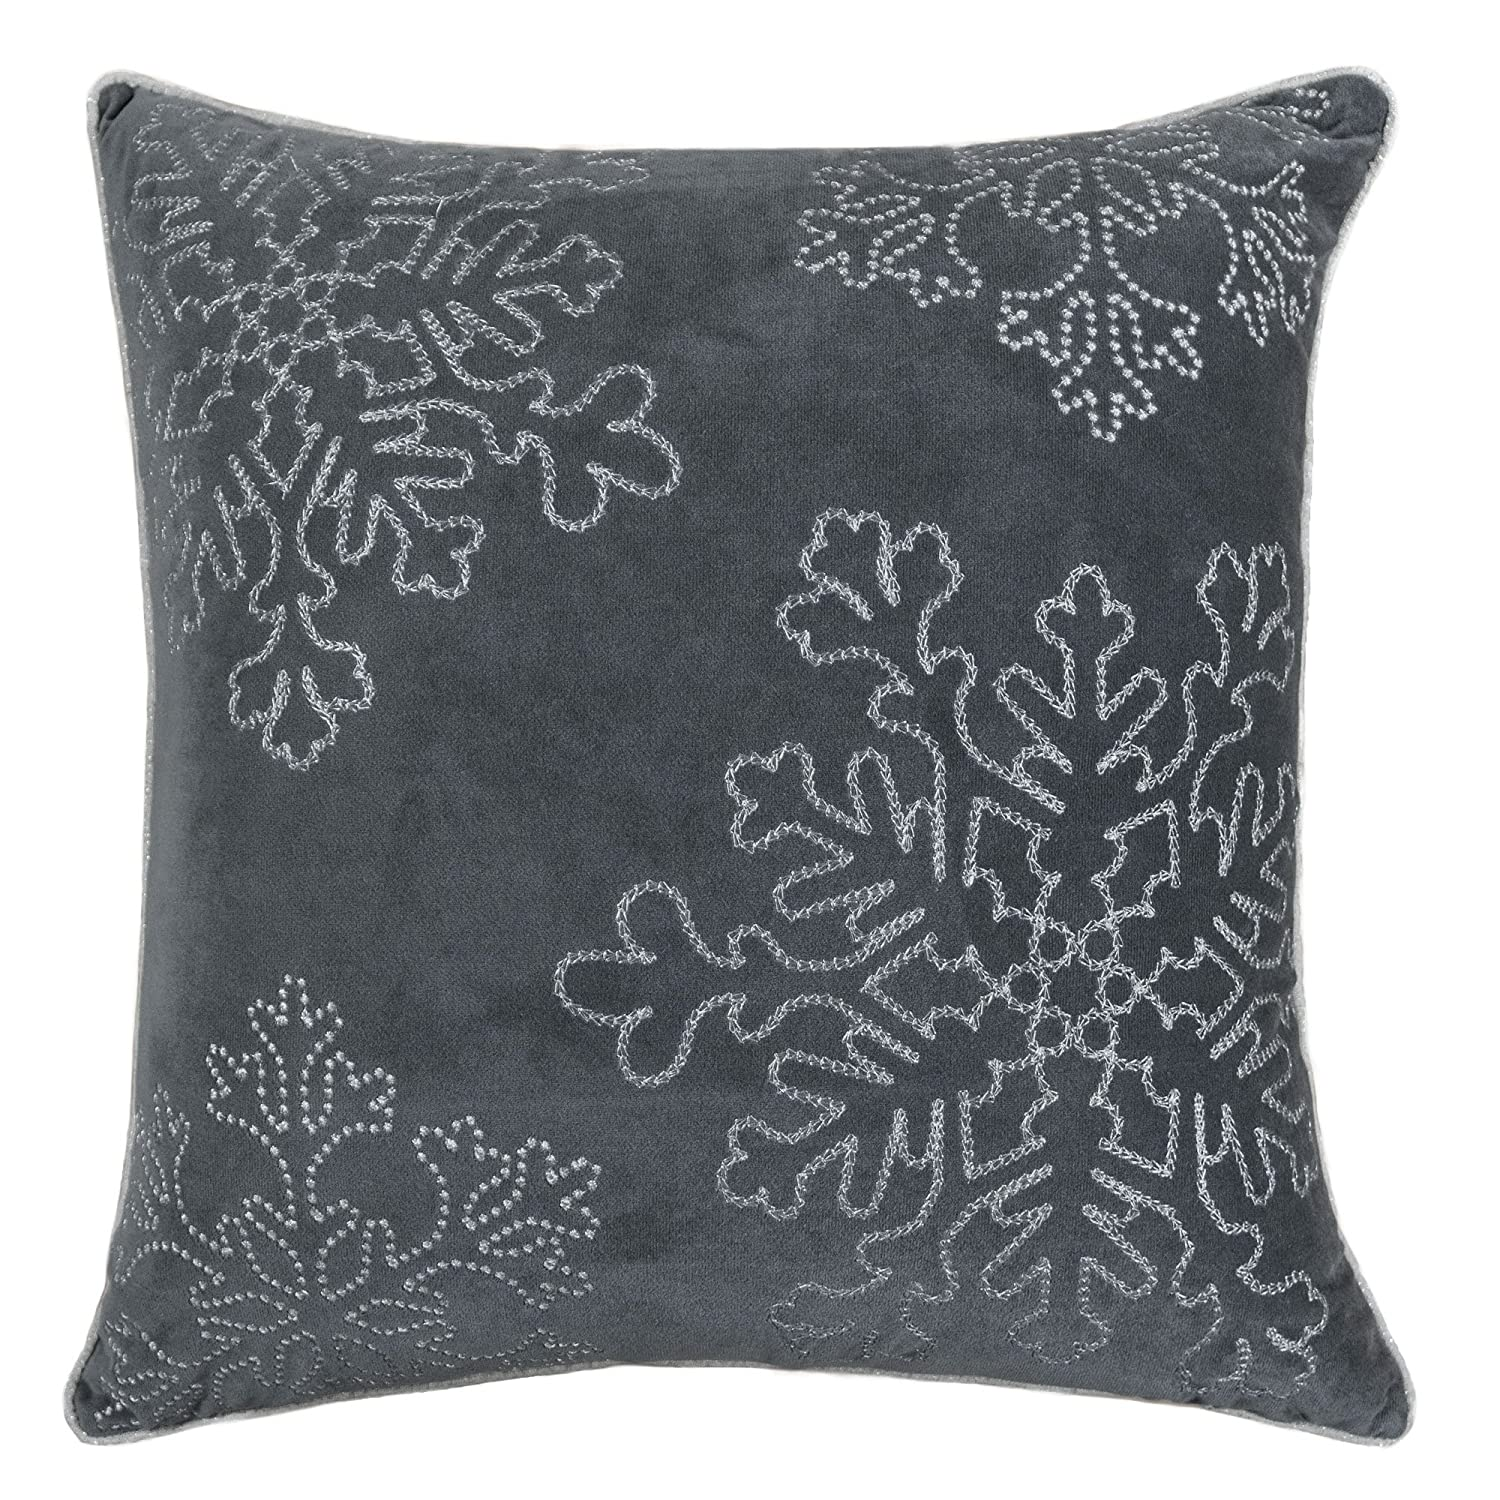 shop amazoncom  decorative pillows - homey cozy embroidery gray velvet throw pillow cover merry christmasseries snowflake luxury soft fuzzy